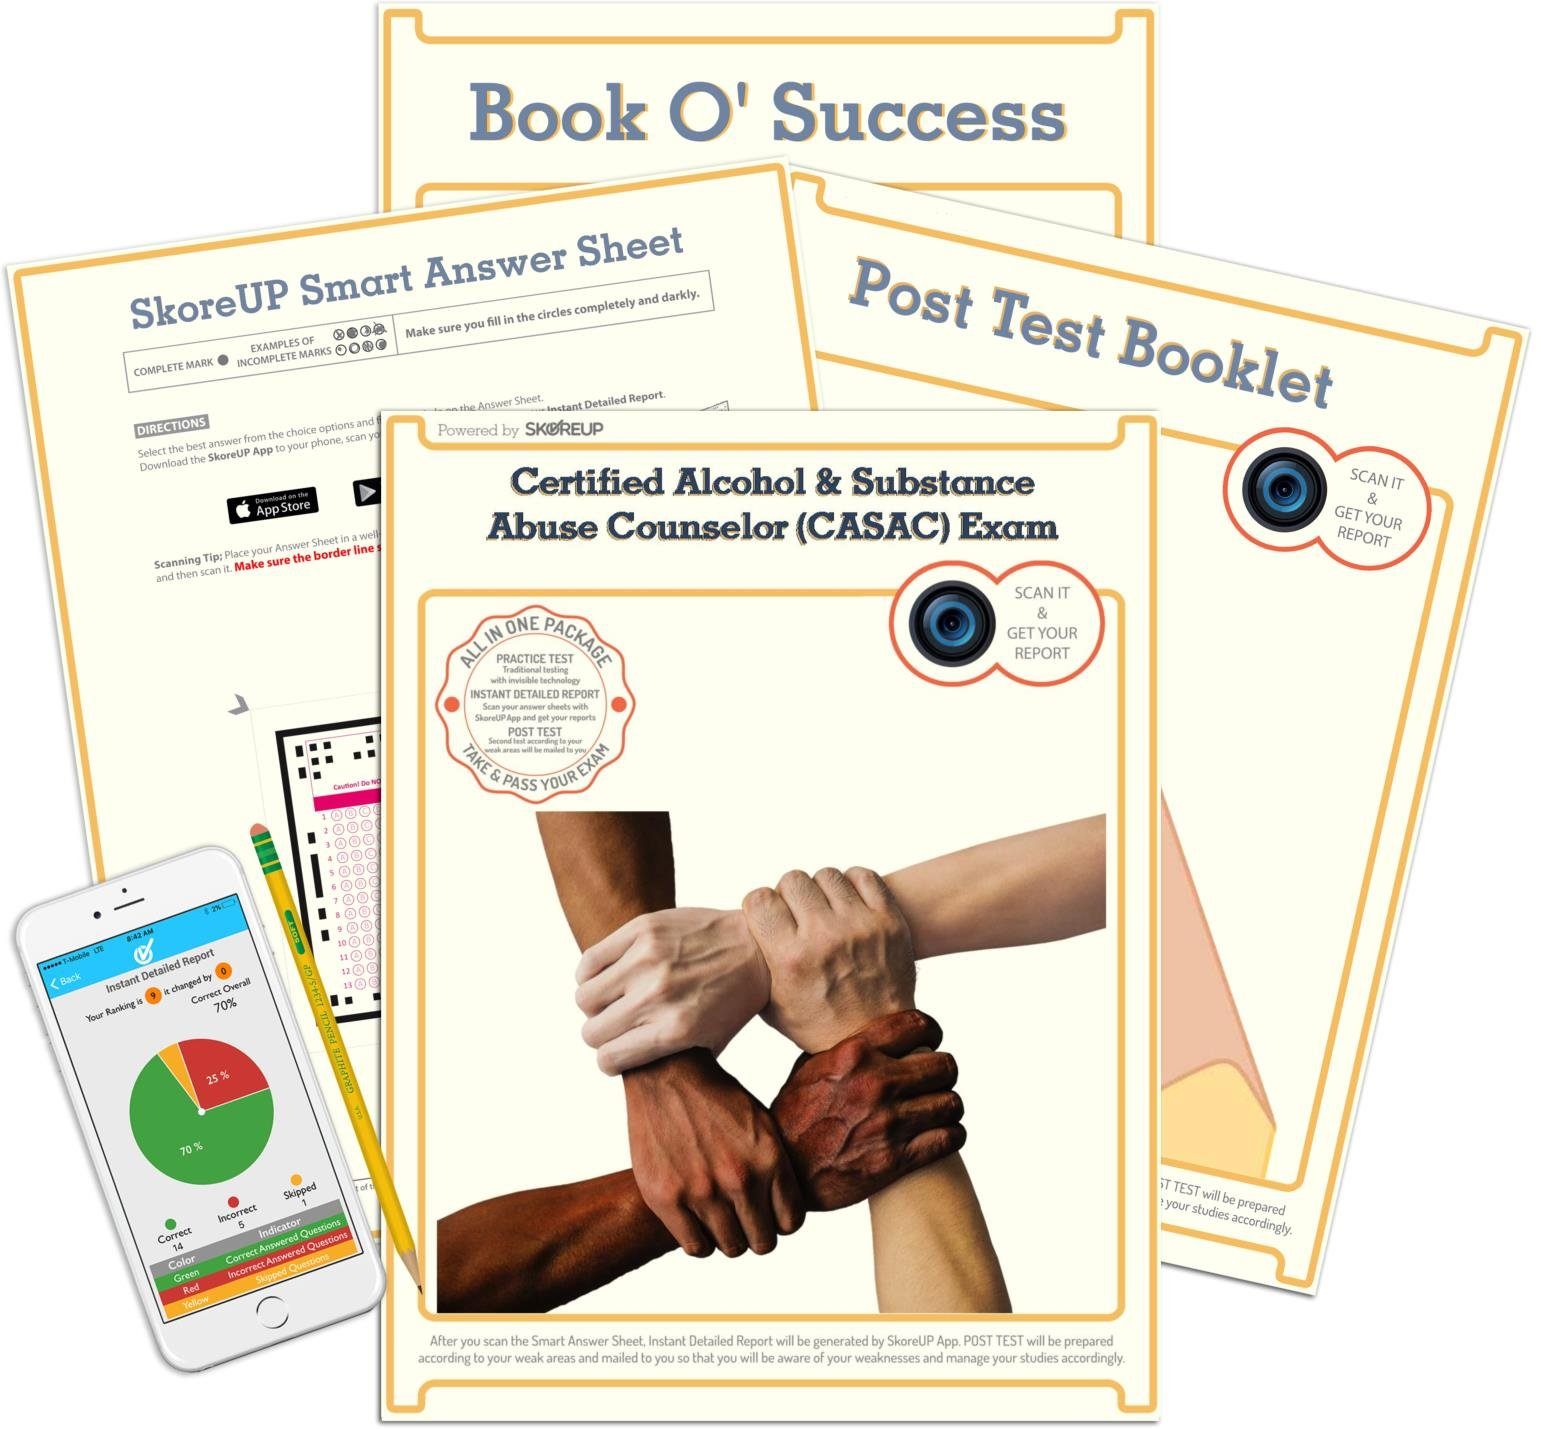 Certified Alcohol Substance Abuse Counselor Casac Exam Career